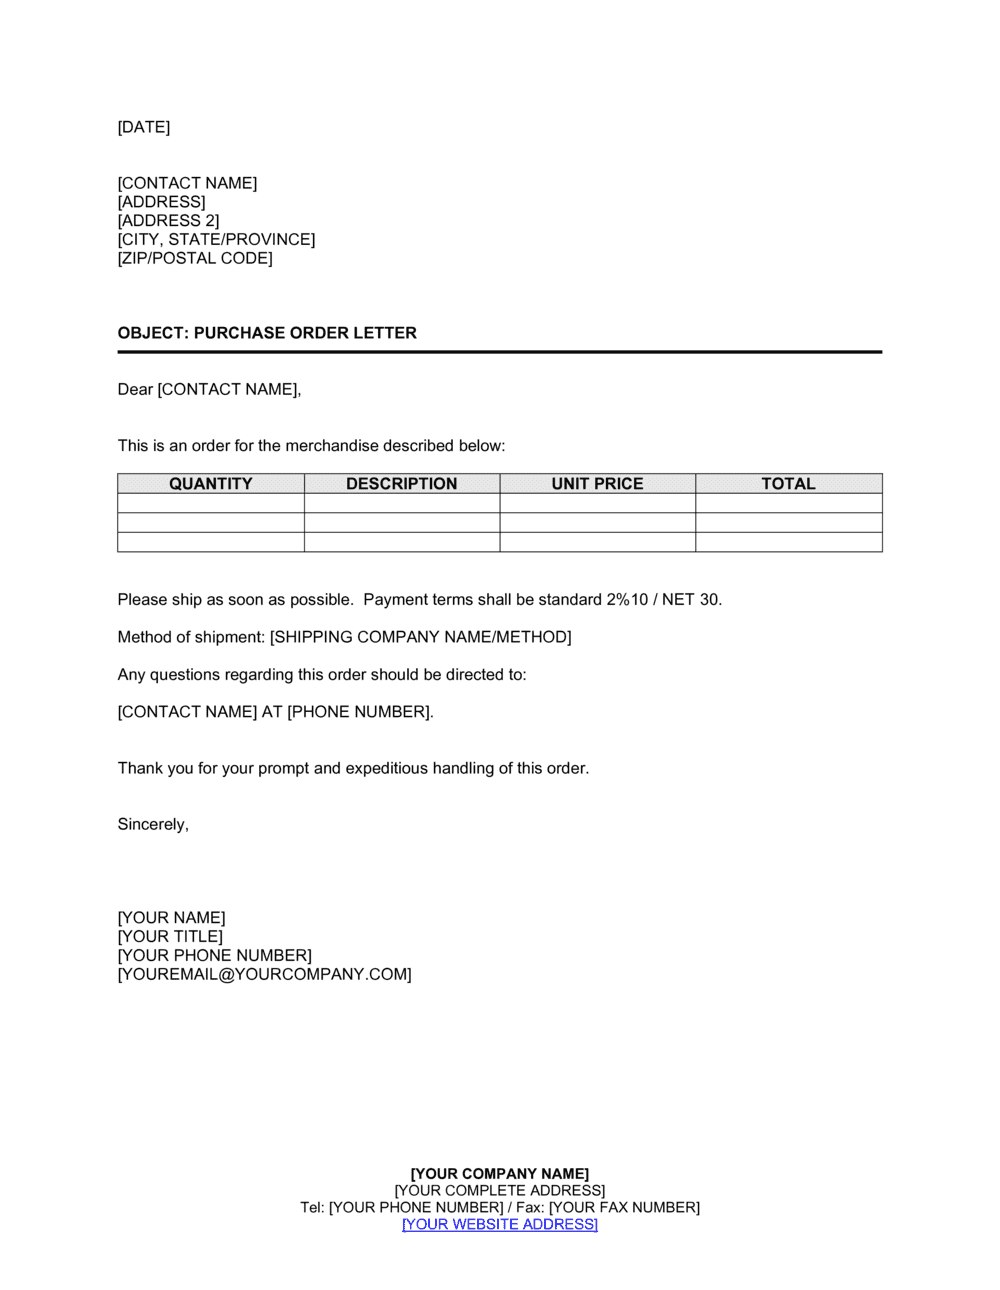 Standard Professional Letter Format from templates.business-in-a-box.com